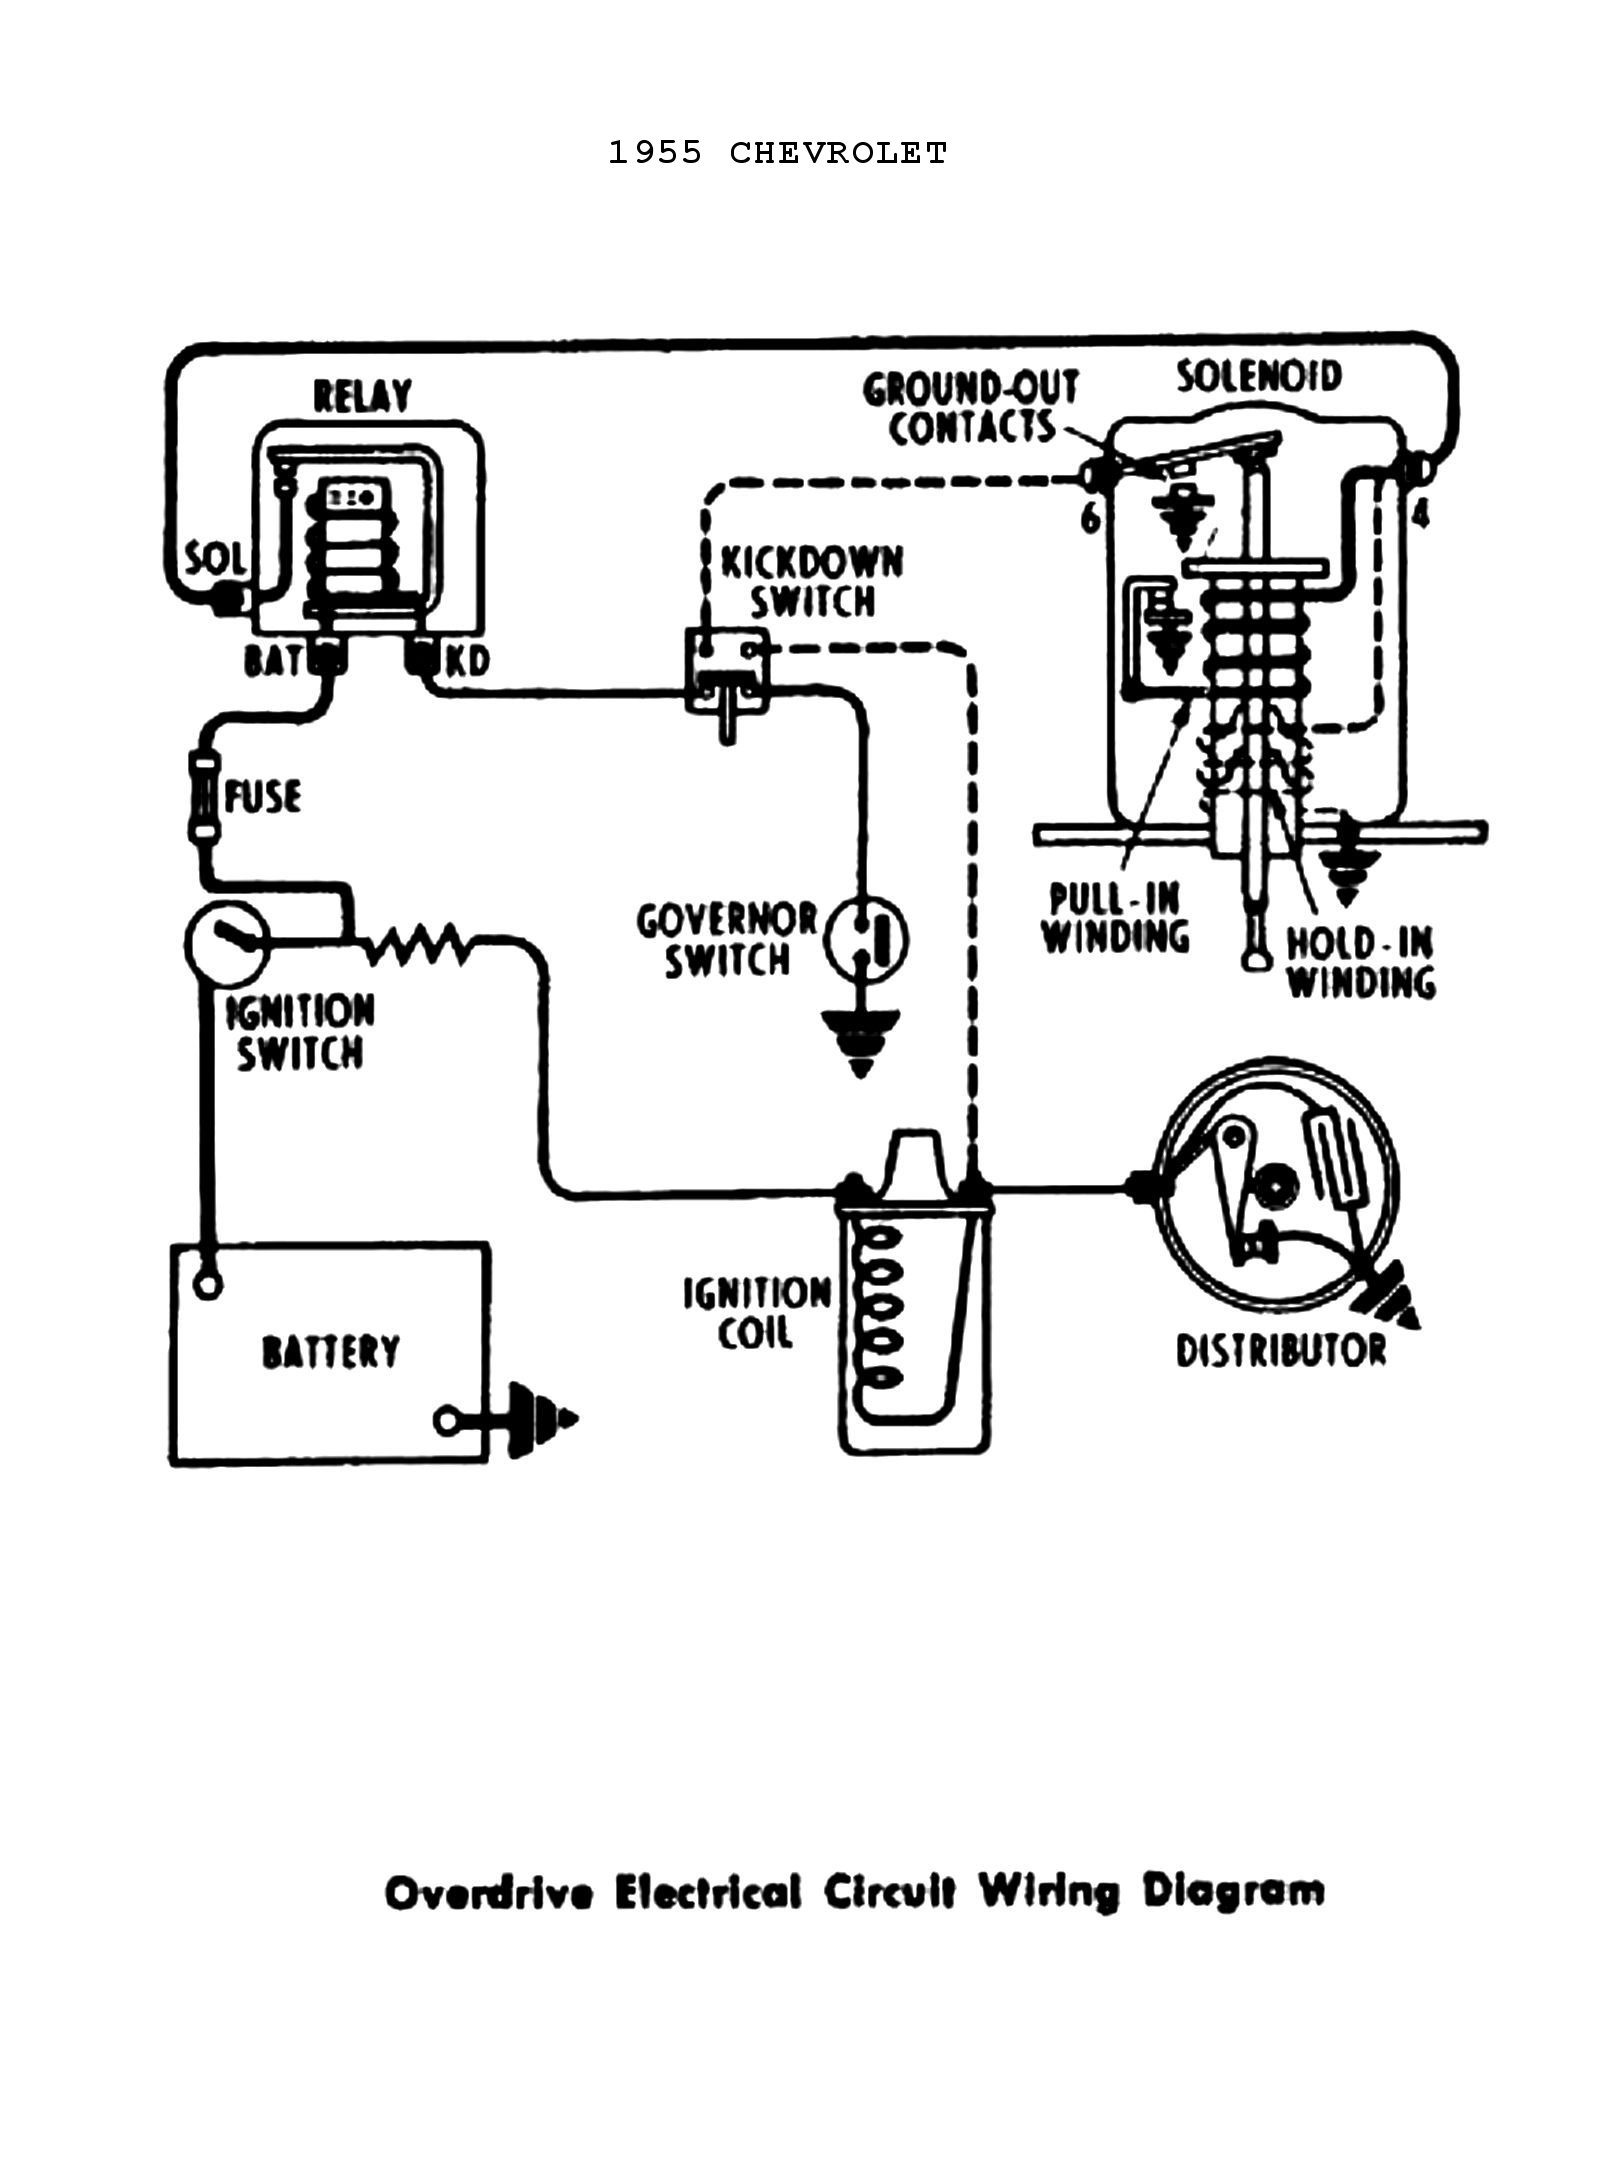 55odtrans1 chevy wiring diagrams circuit wiring diagram at reclaimingppi.co